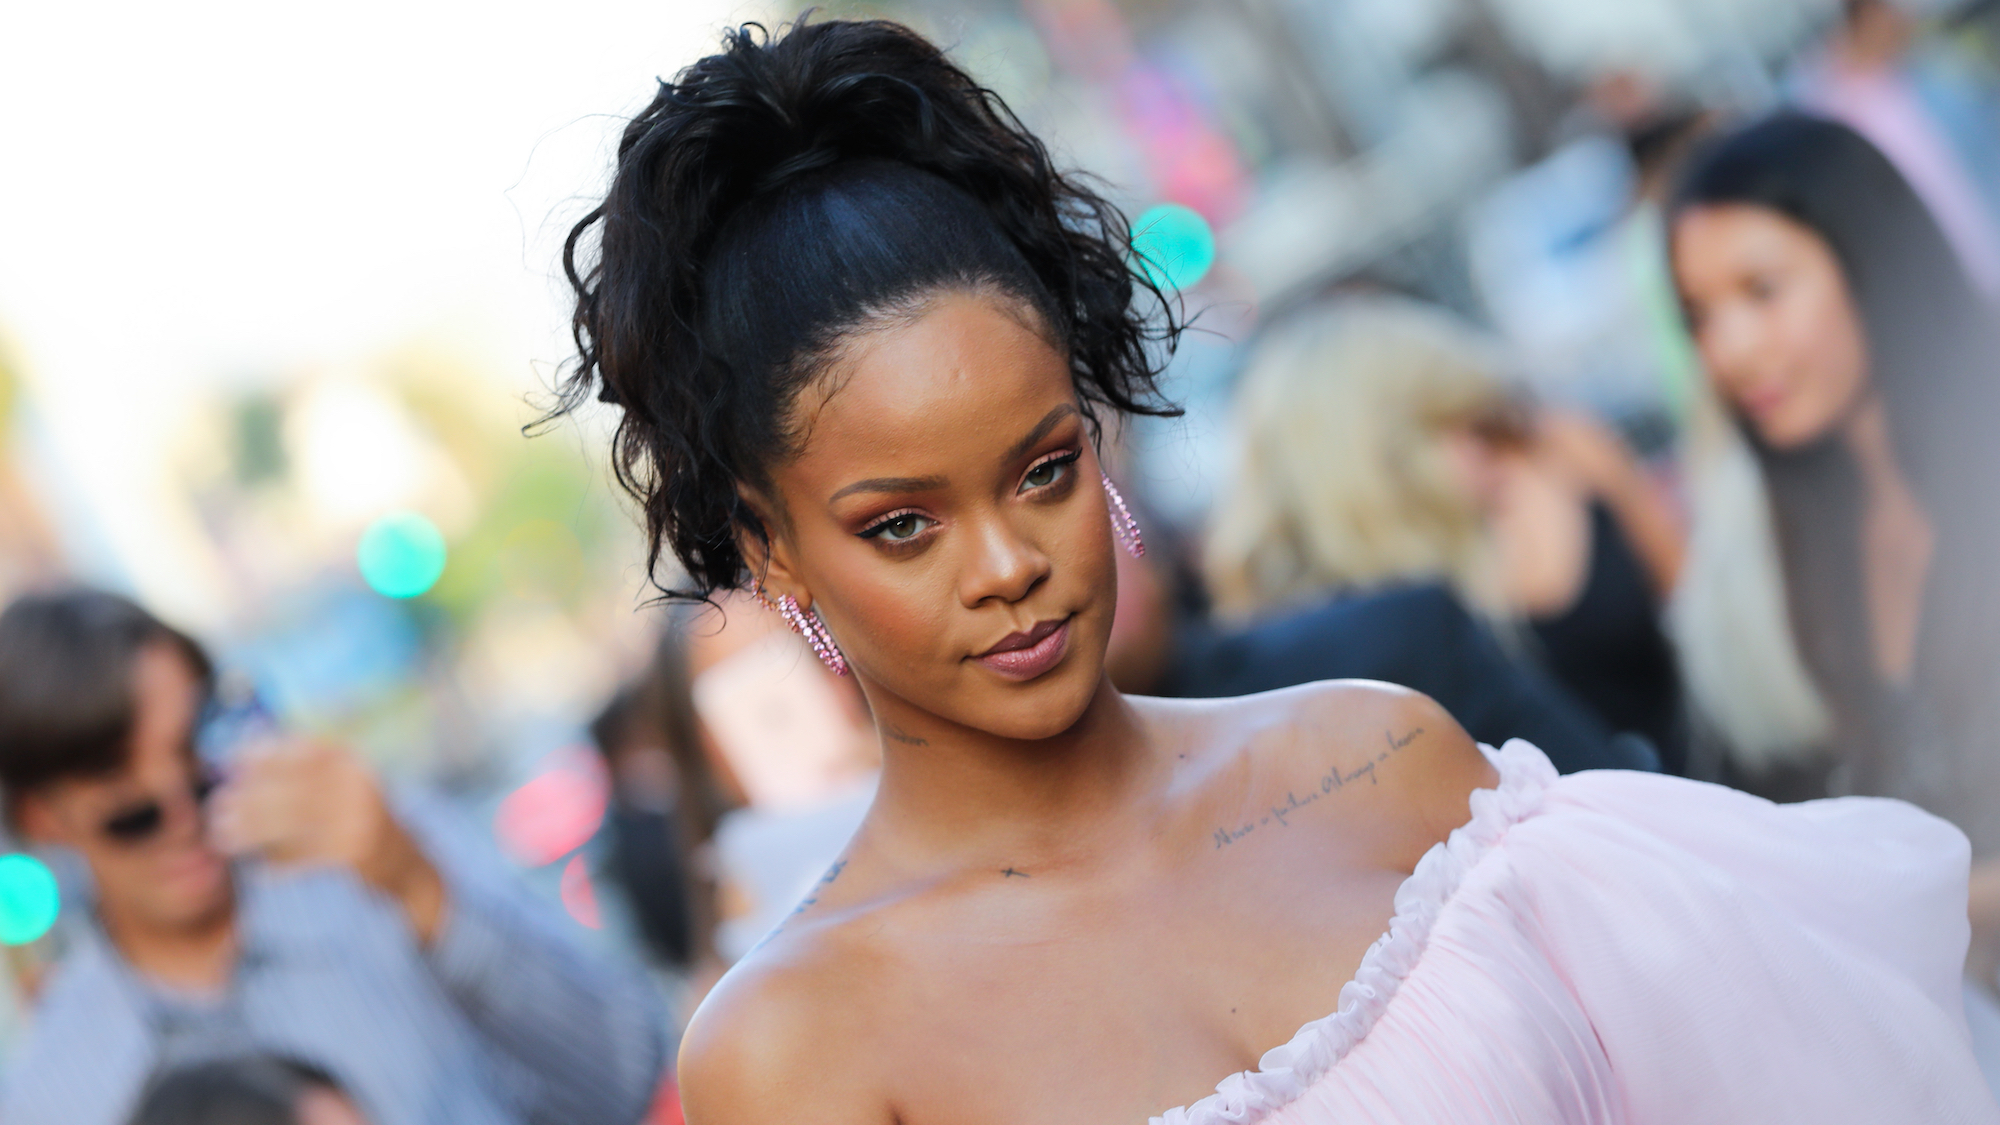 Best Hairstyles For Oval Faces 2019 According To Hair Experts Within Most Up To Date Medium Haircuts For Black Women With Oval Faces (View 6 of 20)